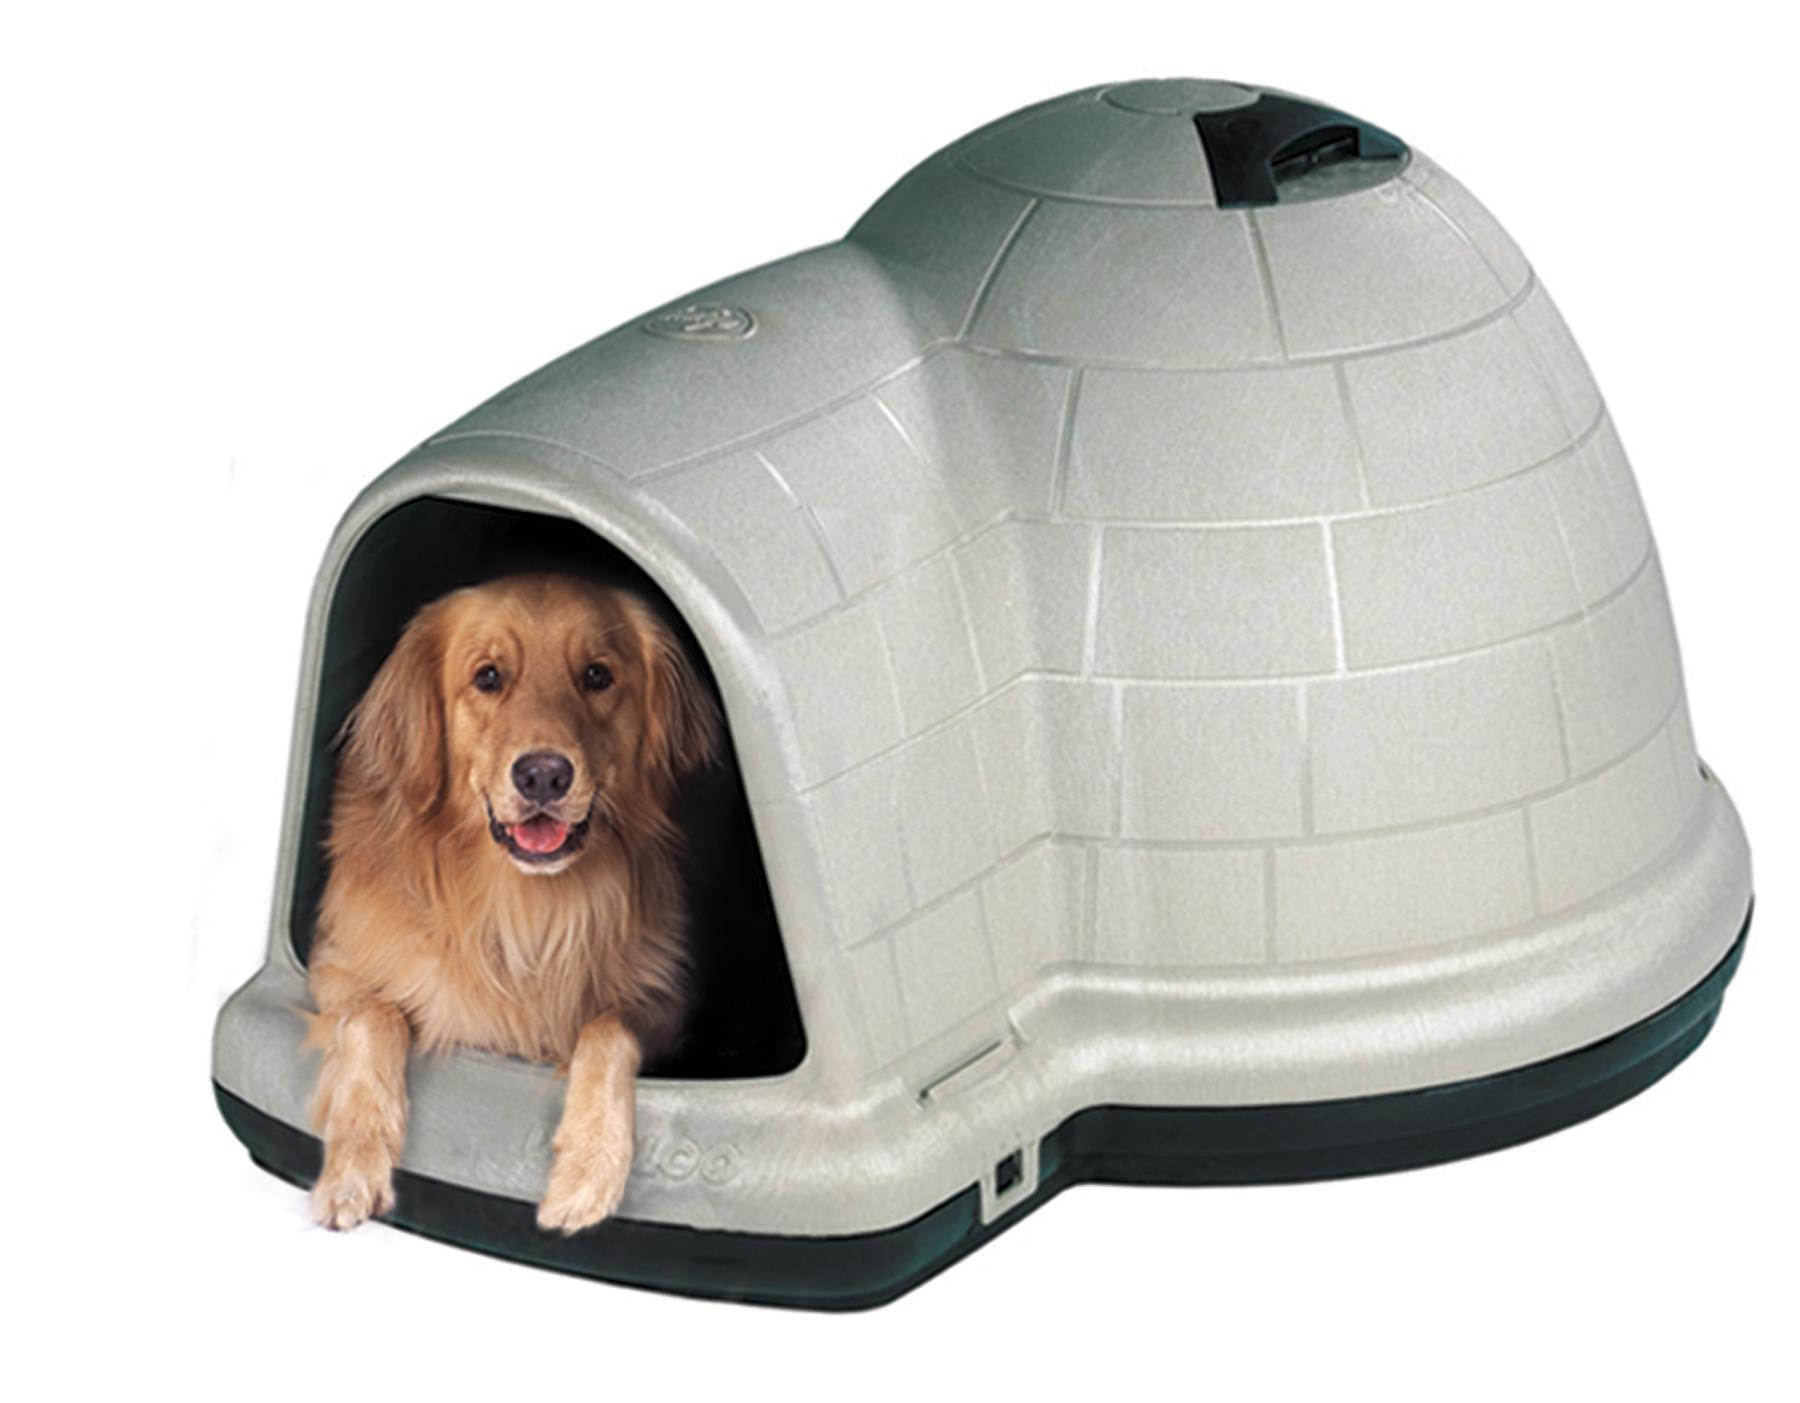 Amazon.com : Petmate INDIGO W/MICROBAN 50-90LBS : Igloo Dog : Pet ...